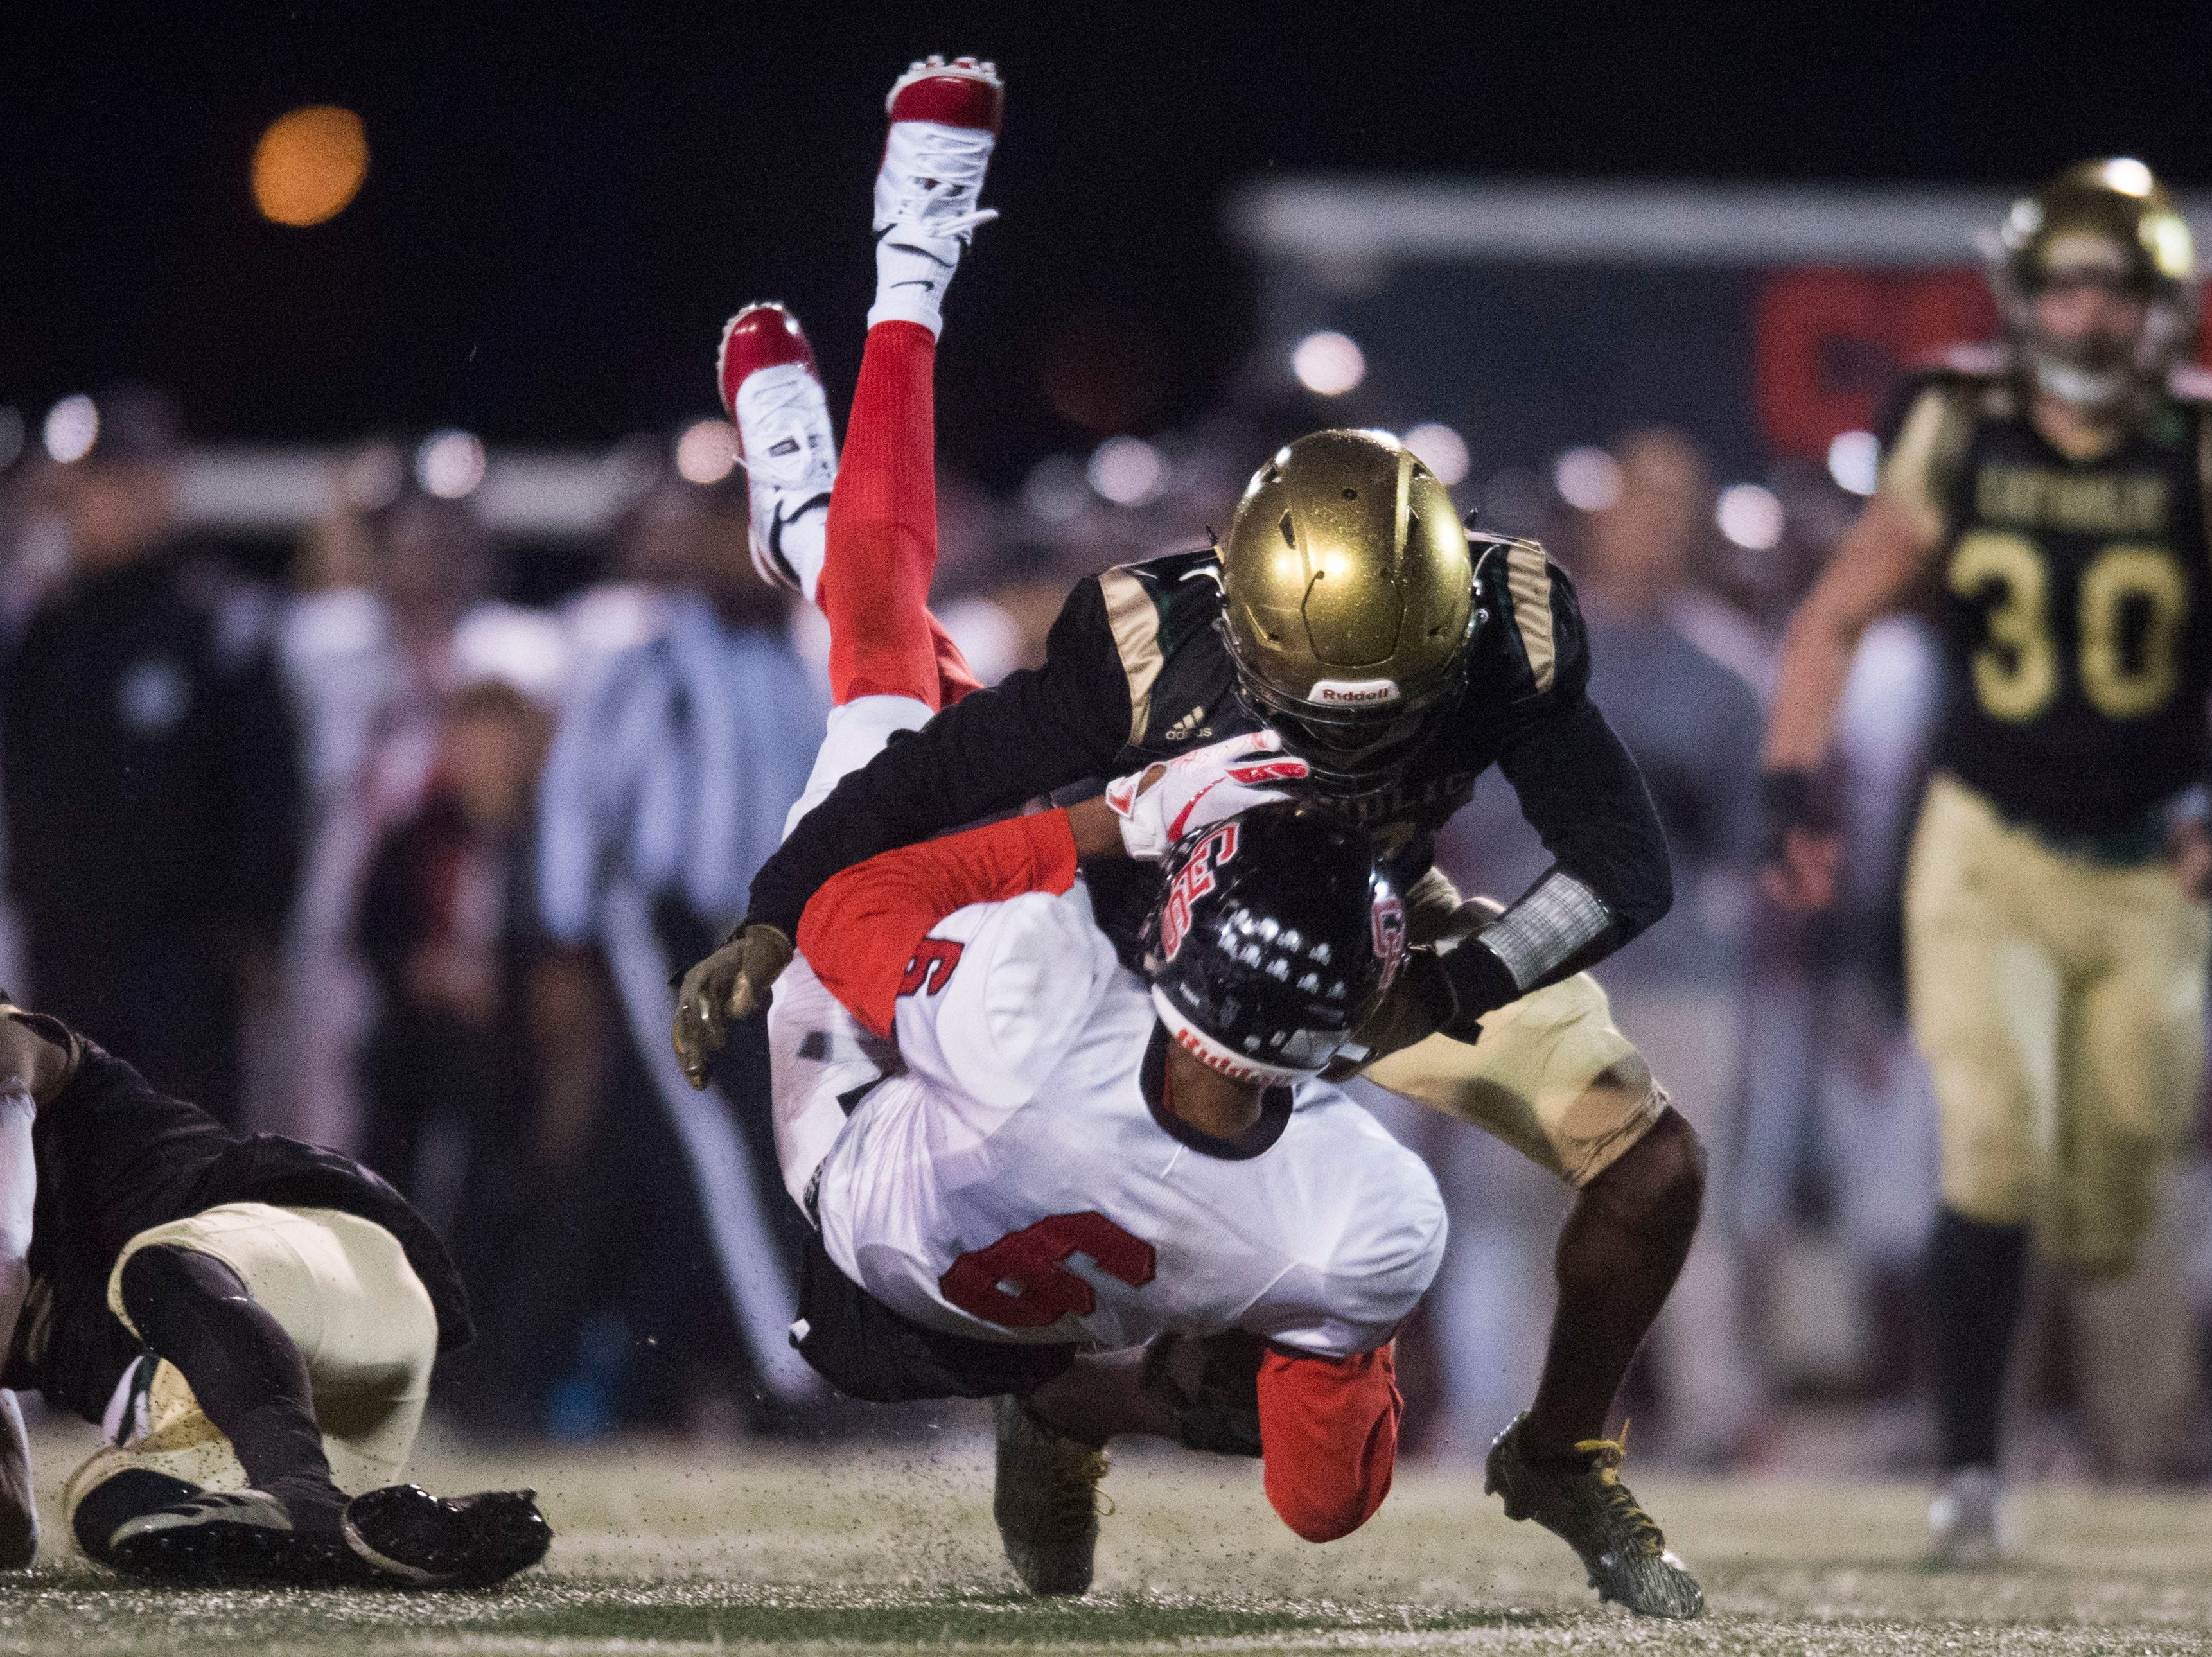 Central's Demetrien Johnson (6) is tackled by Catholic's Ray Thompson (13) during a Class 5A semifinal game between Central at Catholic Friday, Nov. 23, 2018. Central defeated Catholic 24-19.